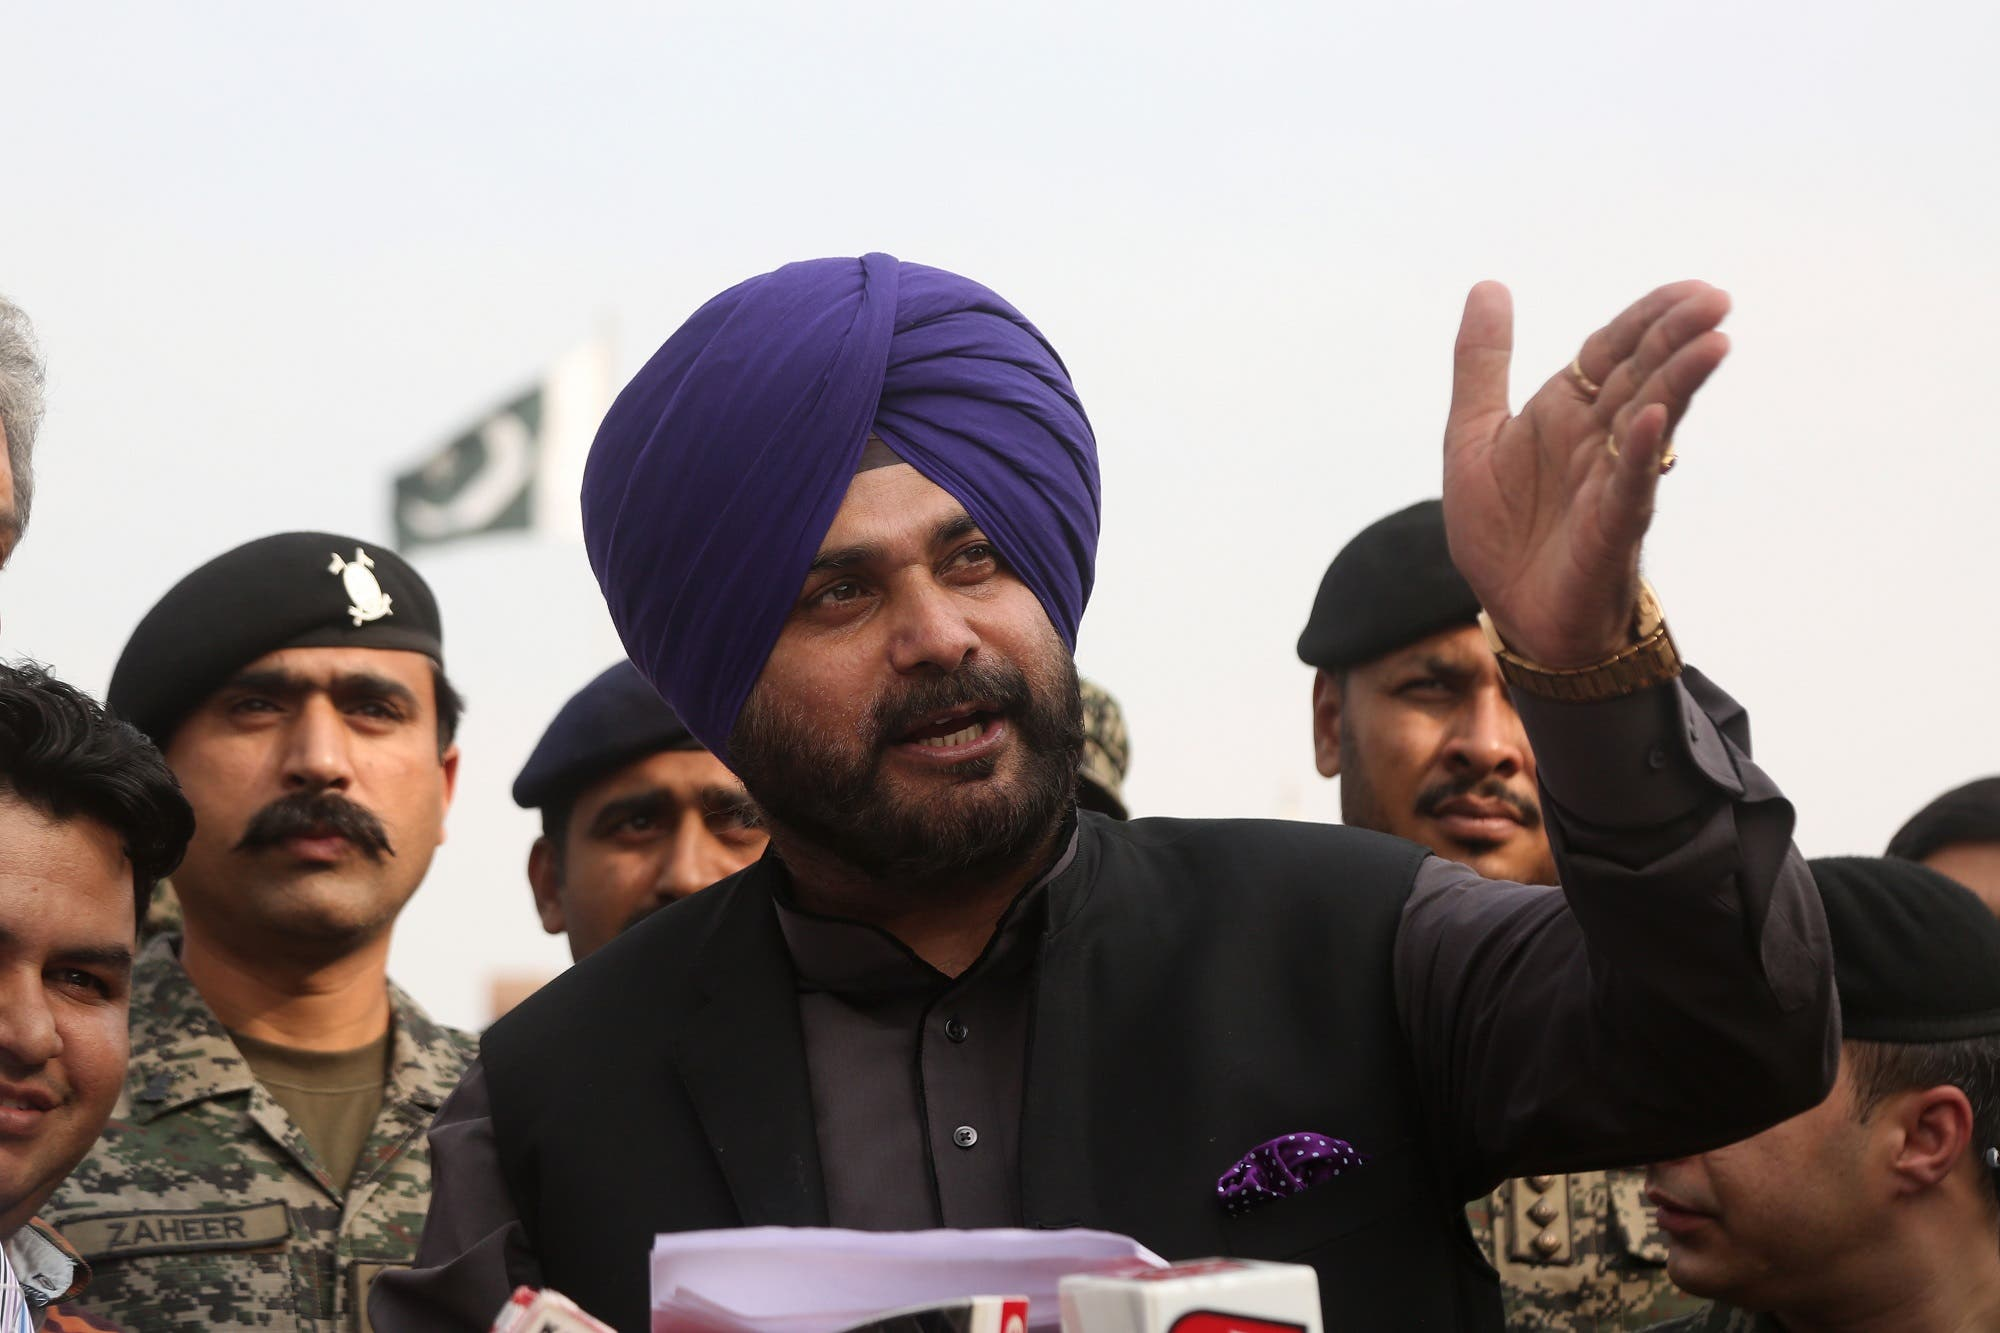 Indian cricketer-turned-politician Navjot Singh Sidhu speaks to journalists after entering Pakistan from India at the border crossing in Wagah on November 27, 2018. (AFP)